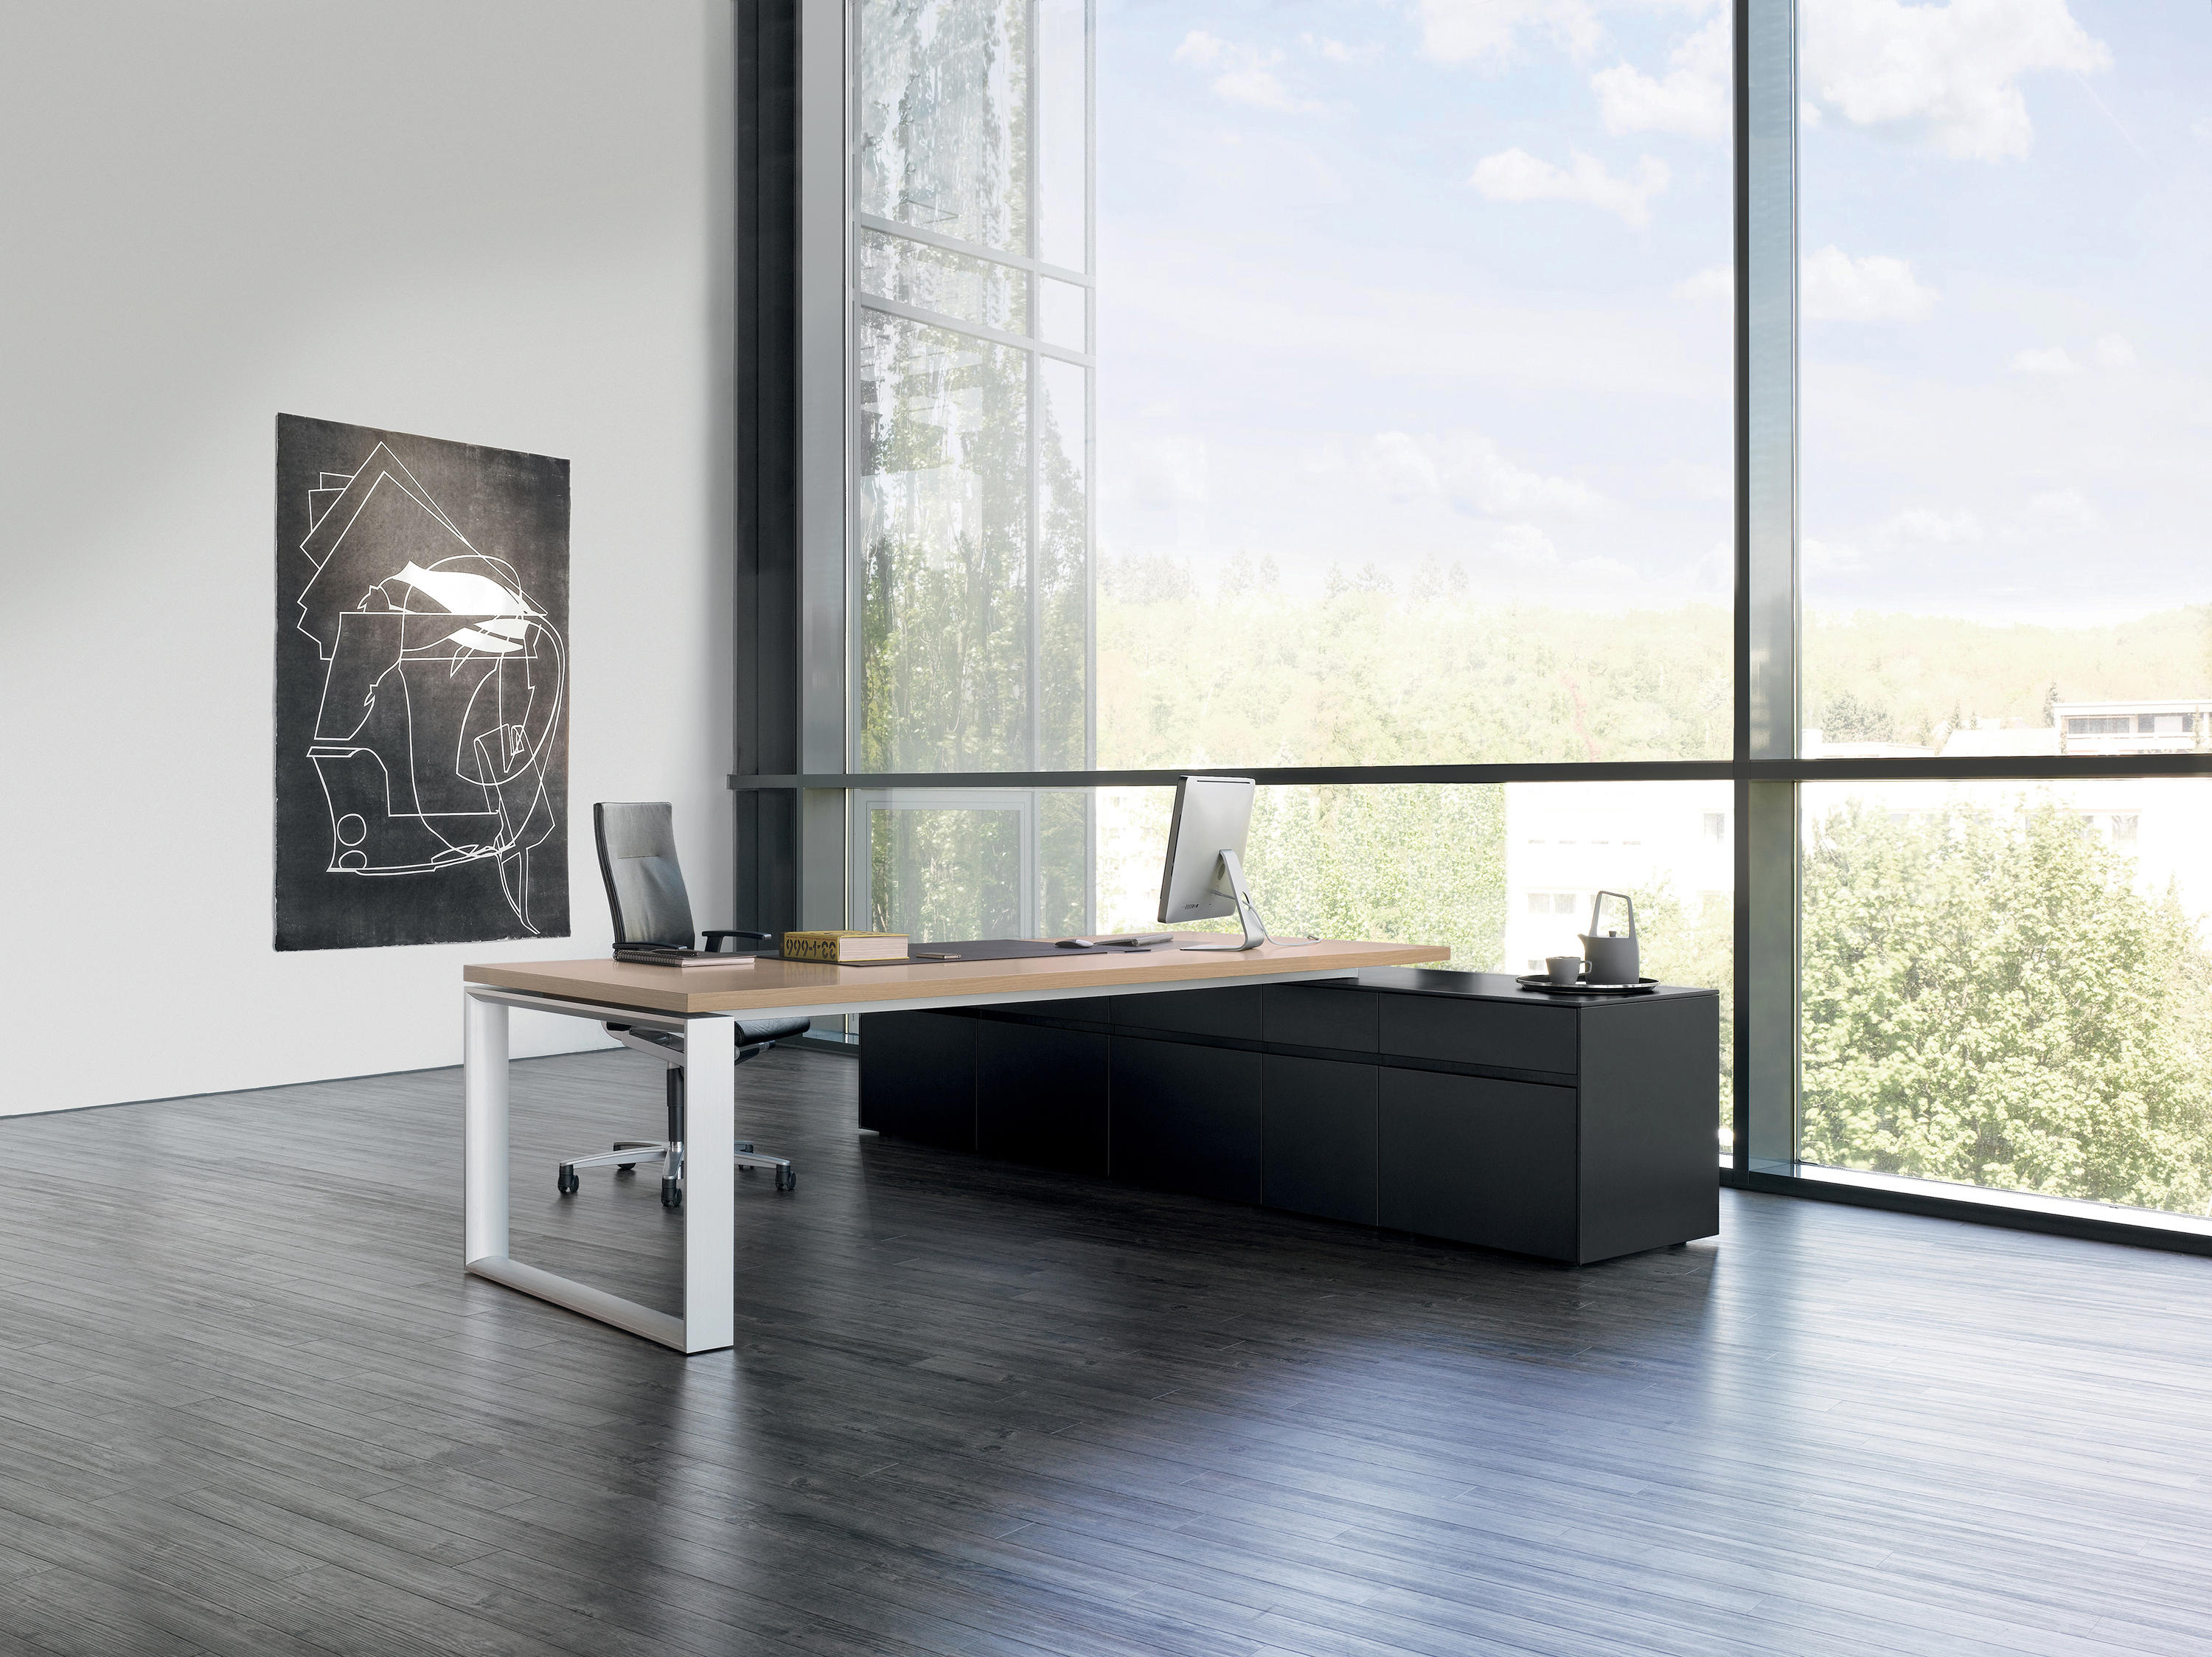 Meuble Sono Sono Table Executive Desks From Renz Architonic